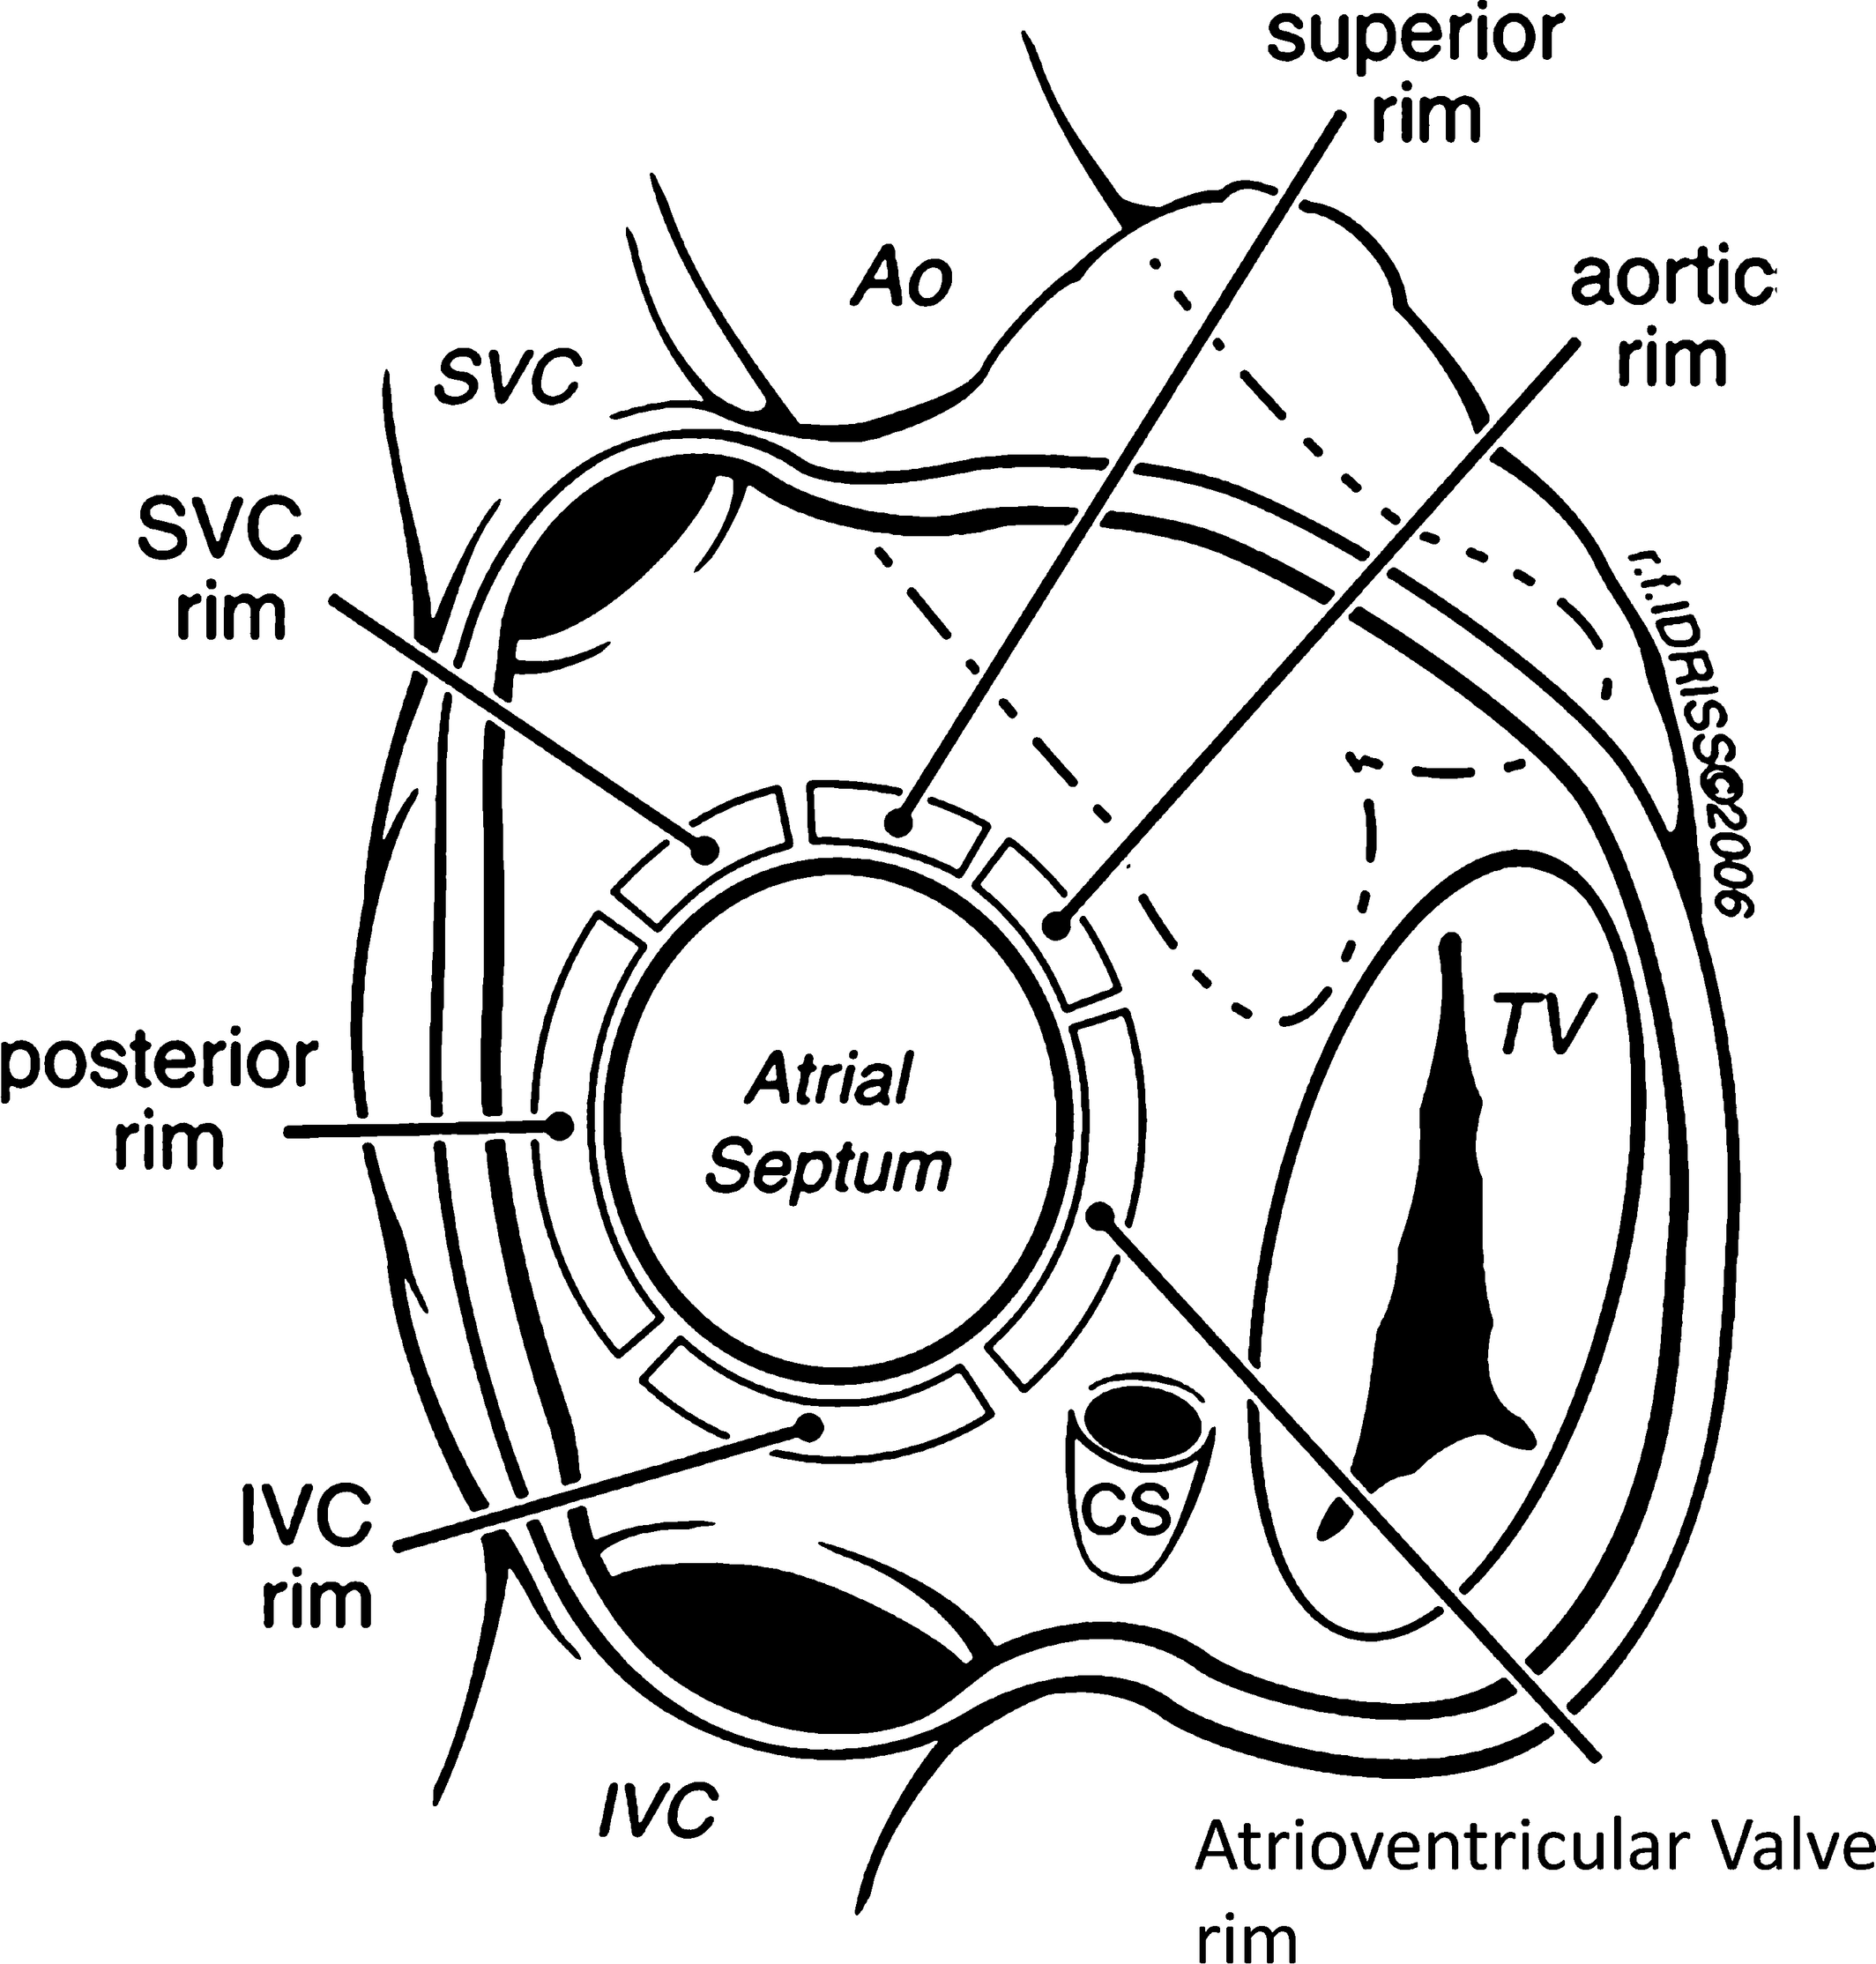 Patent Foramen Ovale Closure for Stroke Prevention and Other